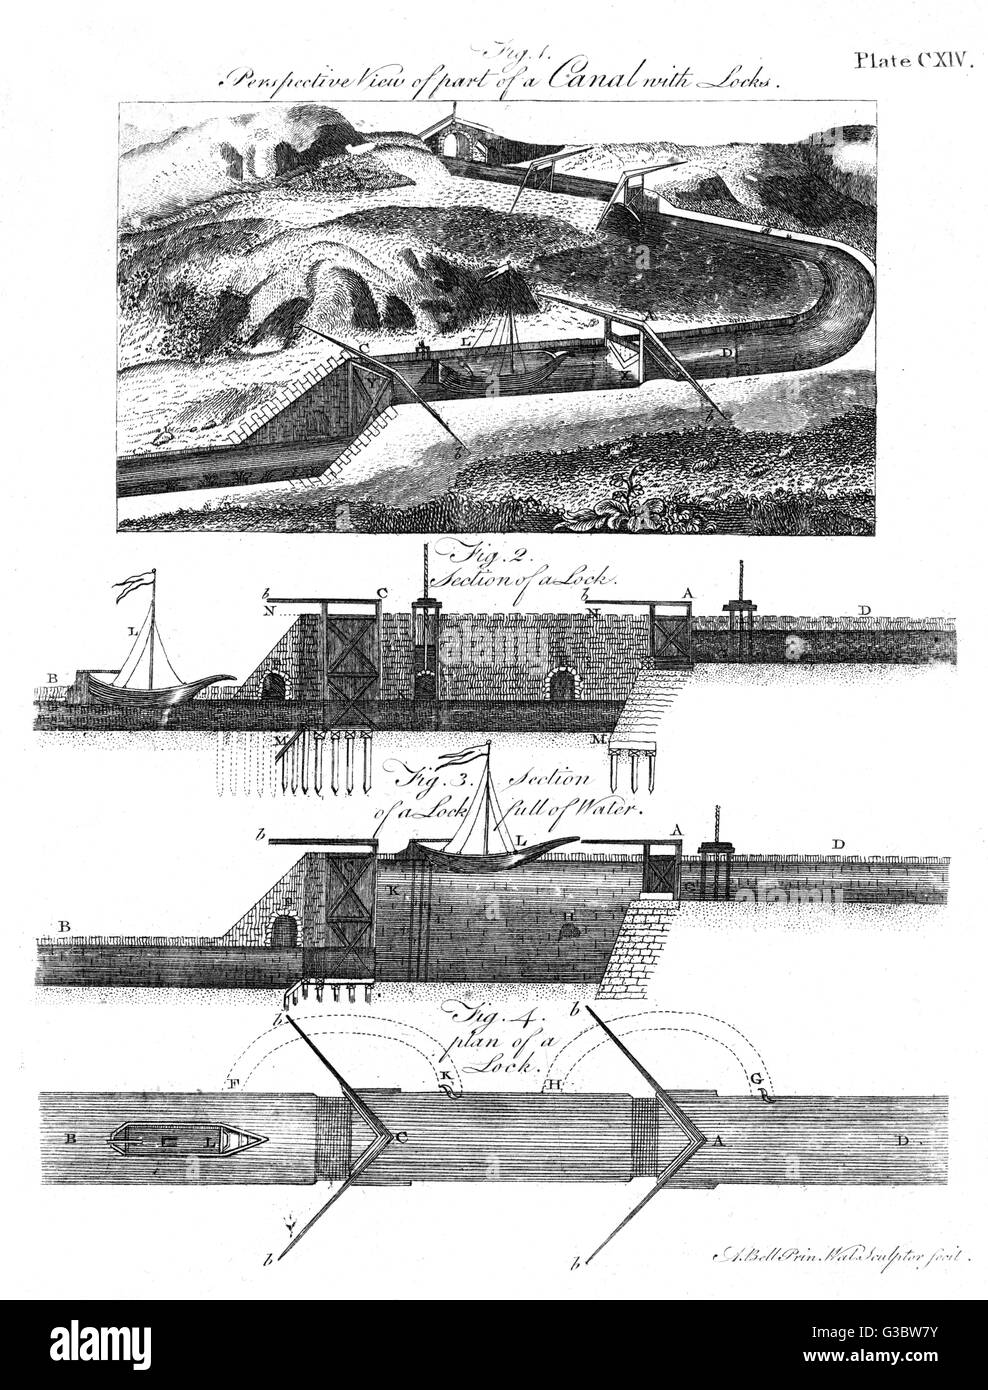 A perspective view of part of a canal with locks, 1797.     Date: 1797 - Stock Image